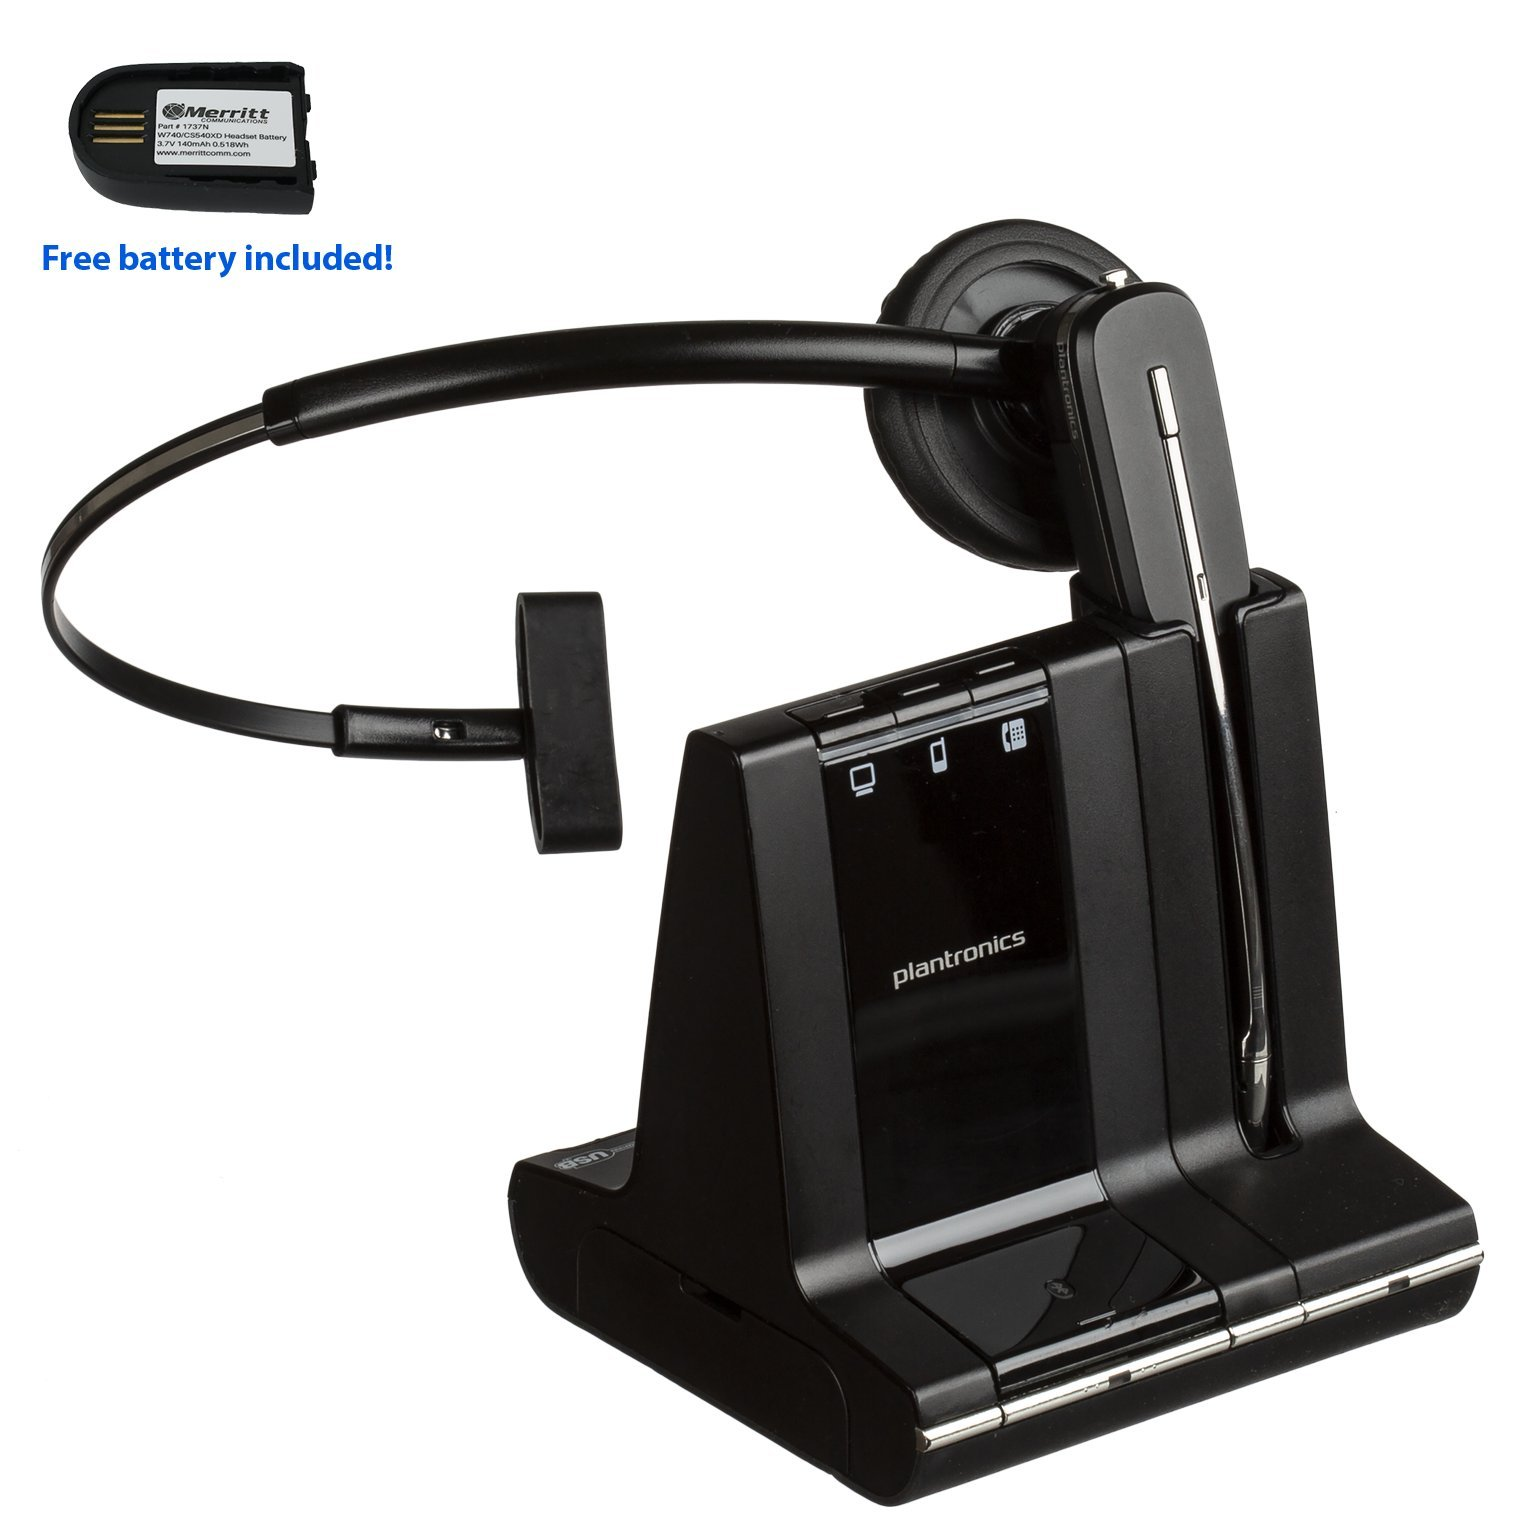 Plantronics Savi W740 Wireless Office Headset System With Free Merritt Spare Battery (Certified Refurbished)